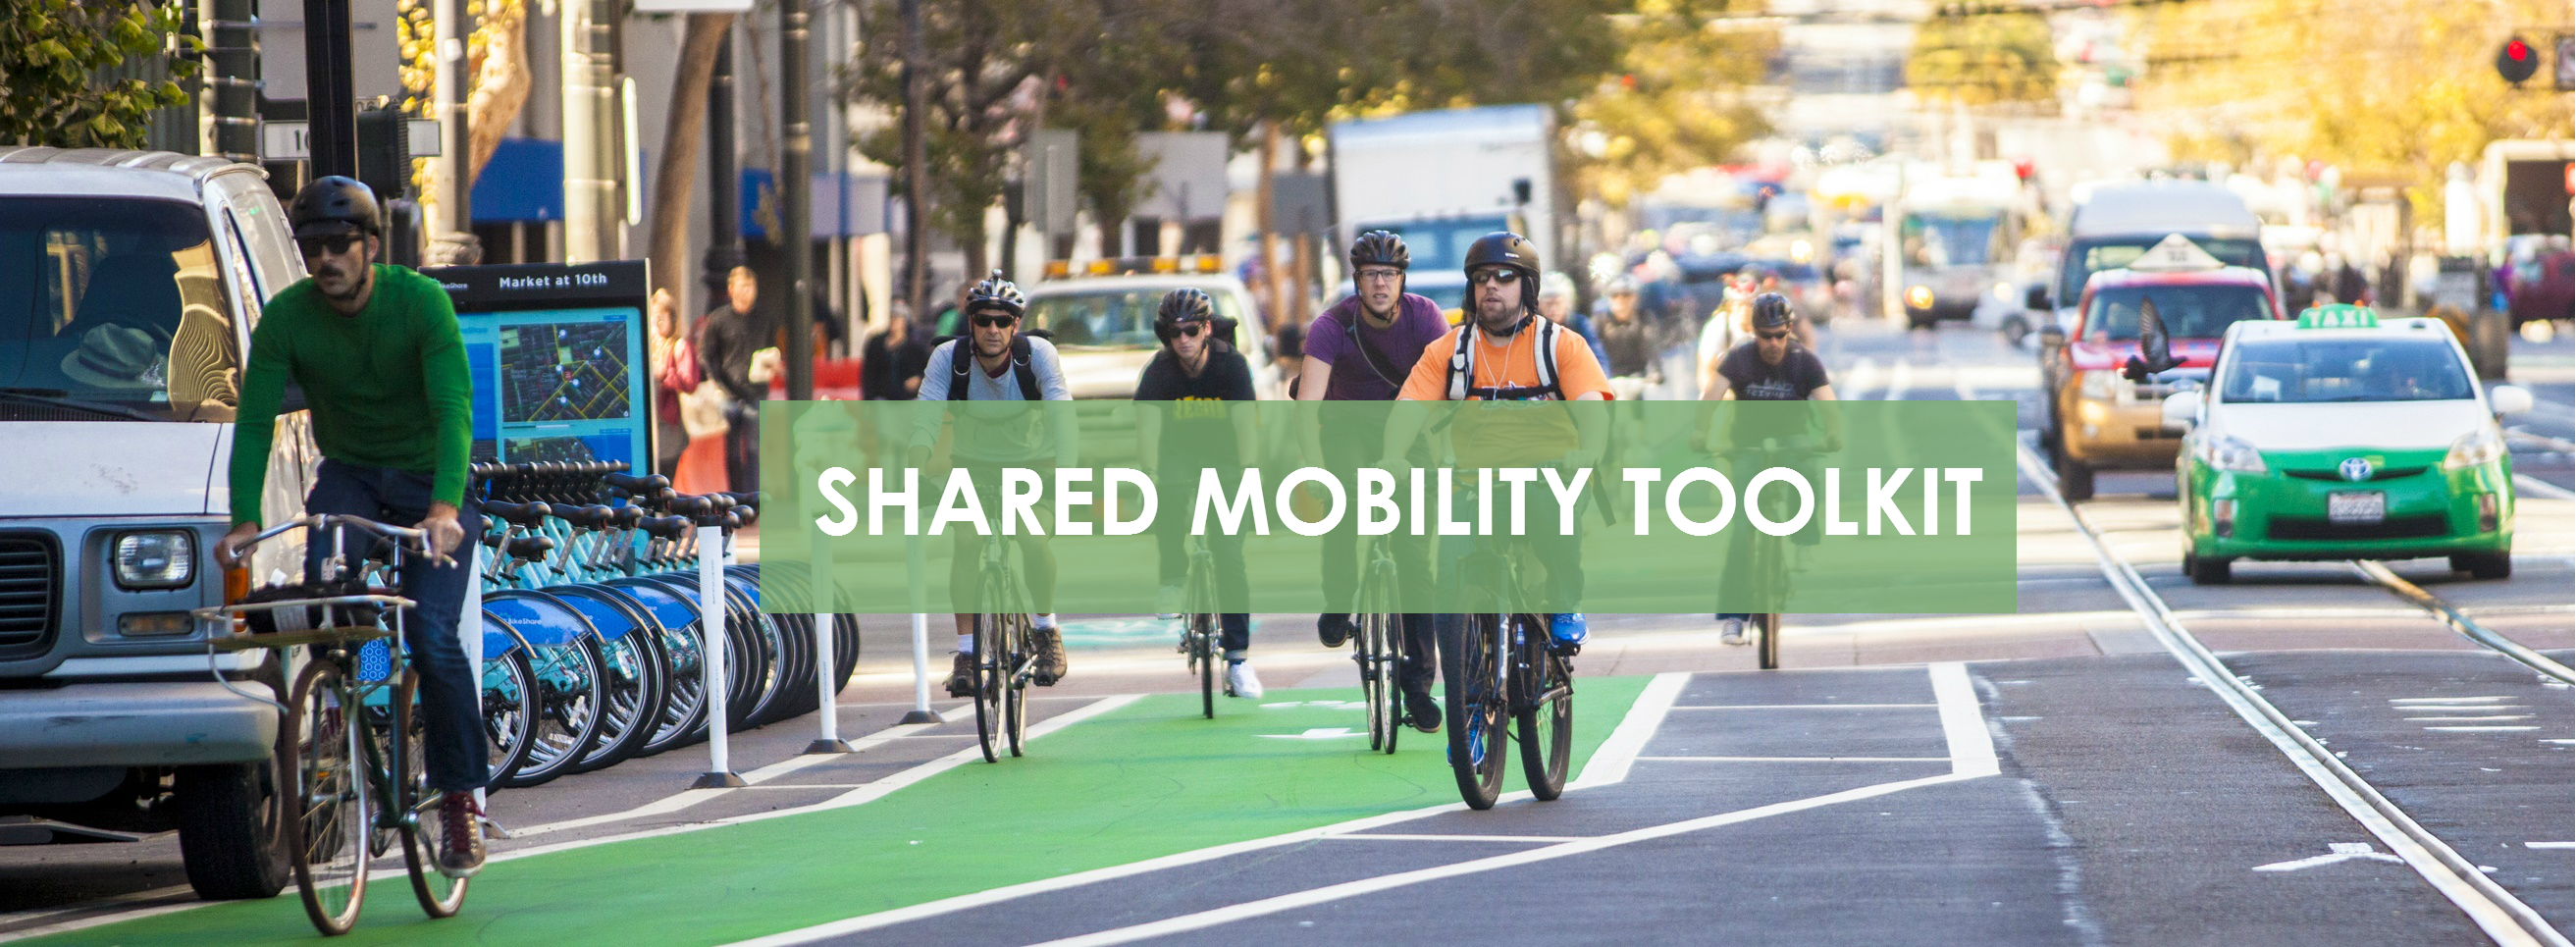 Shared Mobility Toolkit - Smart Growth Online